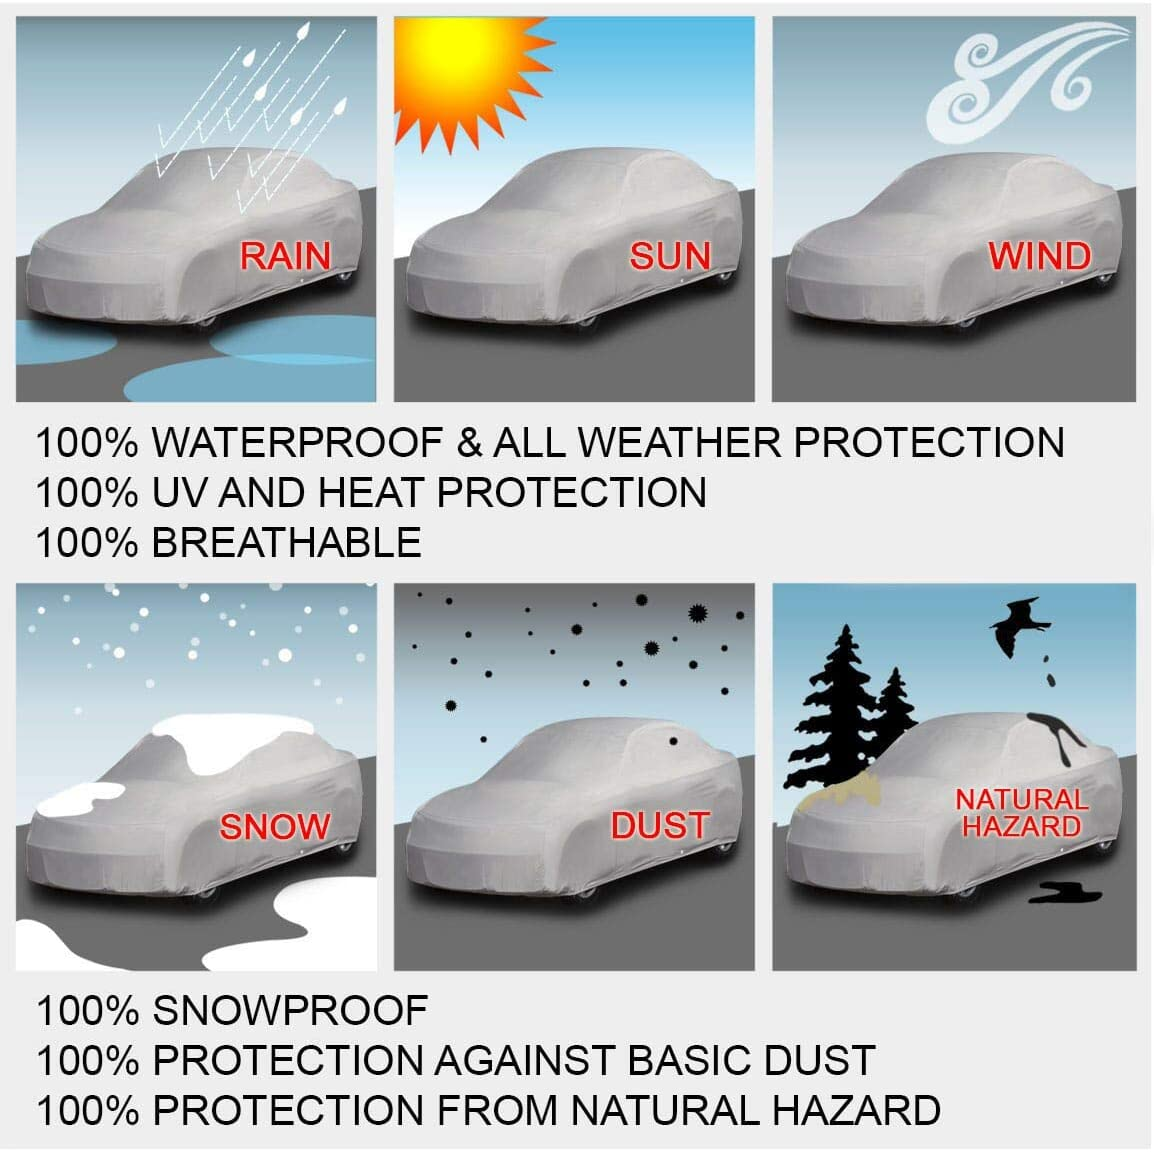 iCarCover {3-Year Full Warranty} All-Weather Waterproof Snow UV Heat Protection Dust Scratch Resistant Windproof Weatherproof Breathable Automobile Indoor Outdoor Auto Car Cover for Cars Up to 193